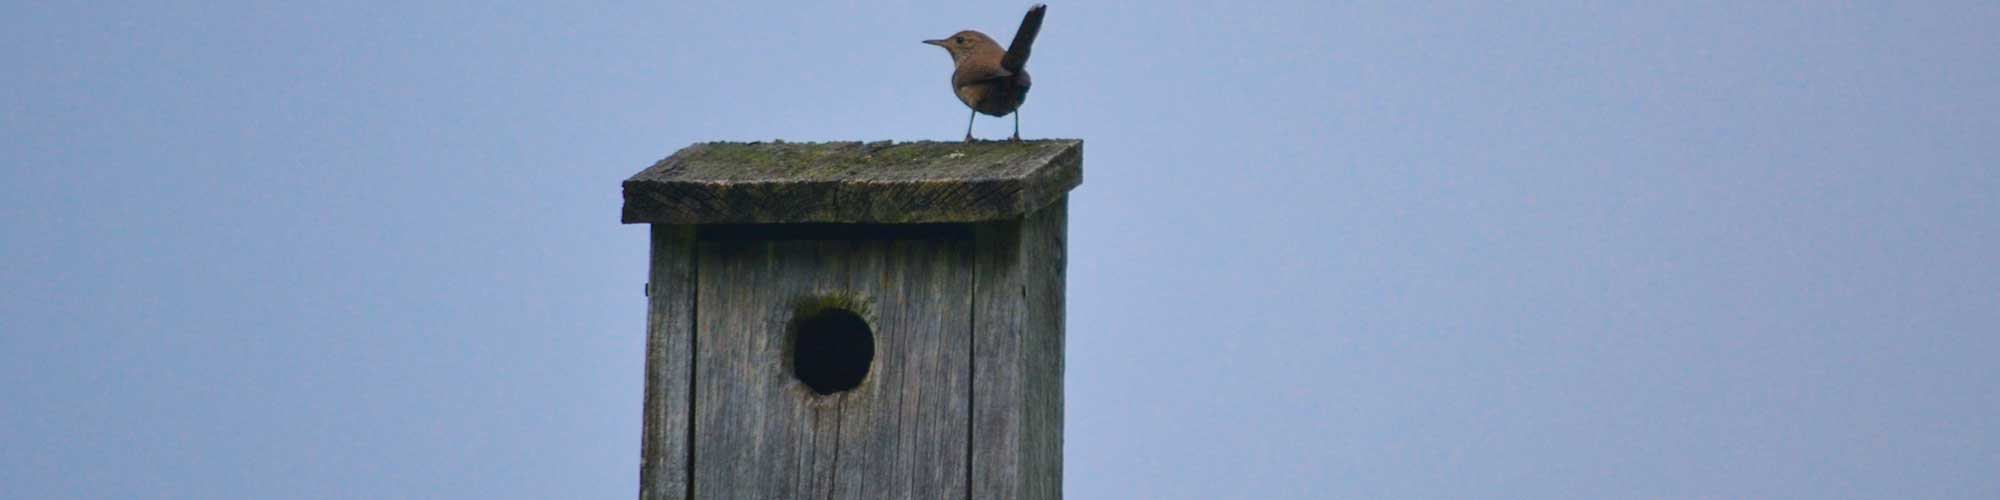 Nestbox with House Wren